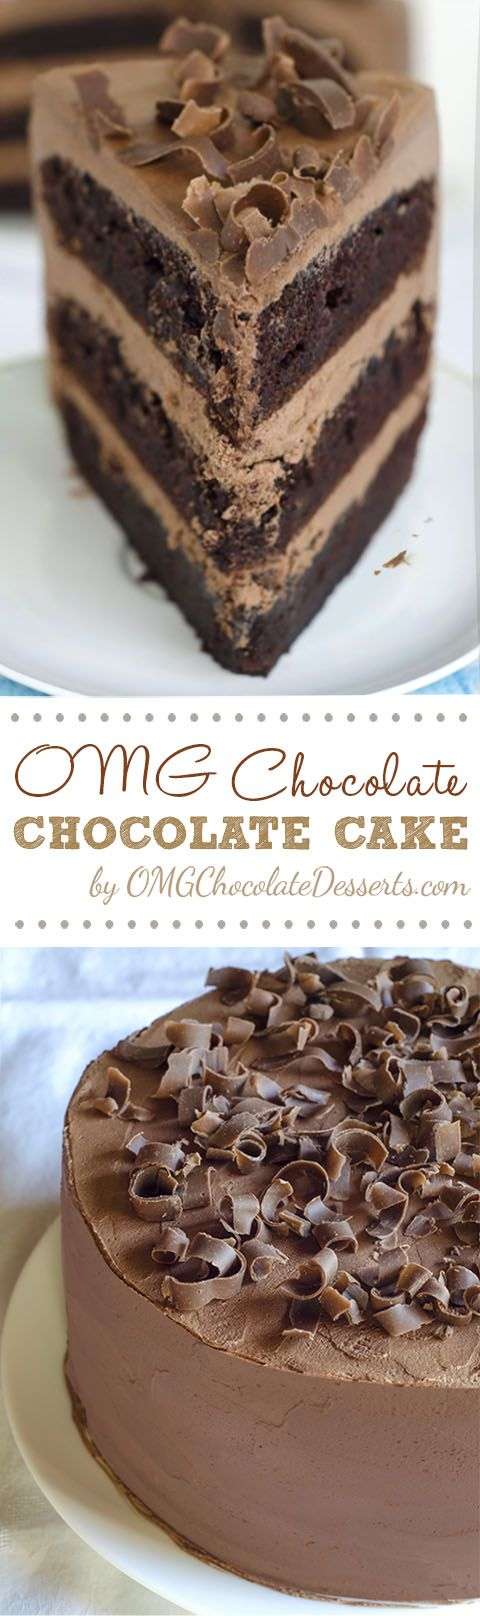 Check why is this cake called  OMG Chocolate Chocolate Cake! True pleasure for real chocoholic. Decadent Hershey chocolate cake. | OMGChocolateDesserts.com #chocolate #cake